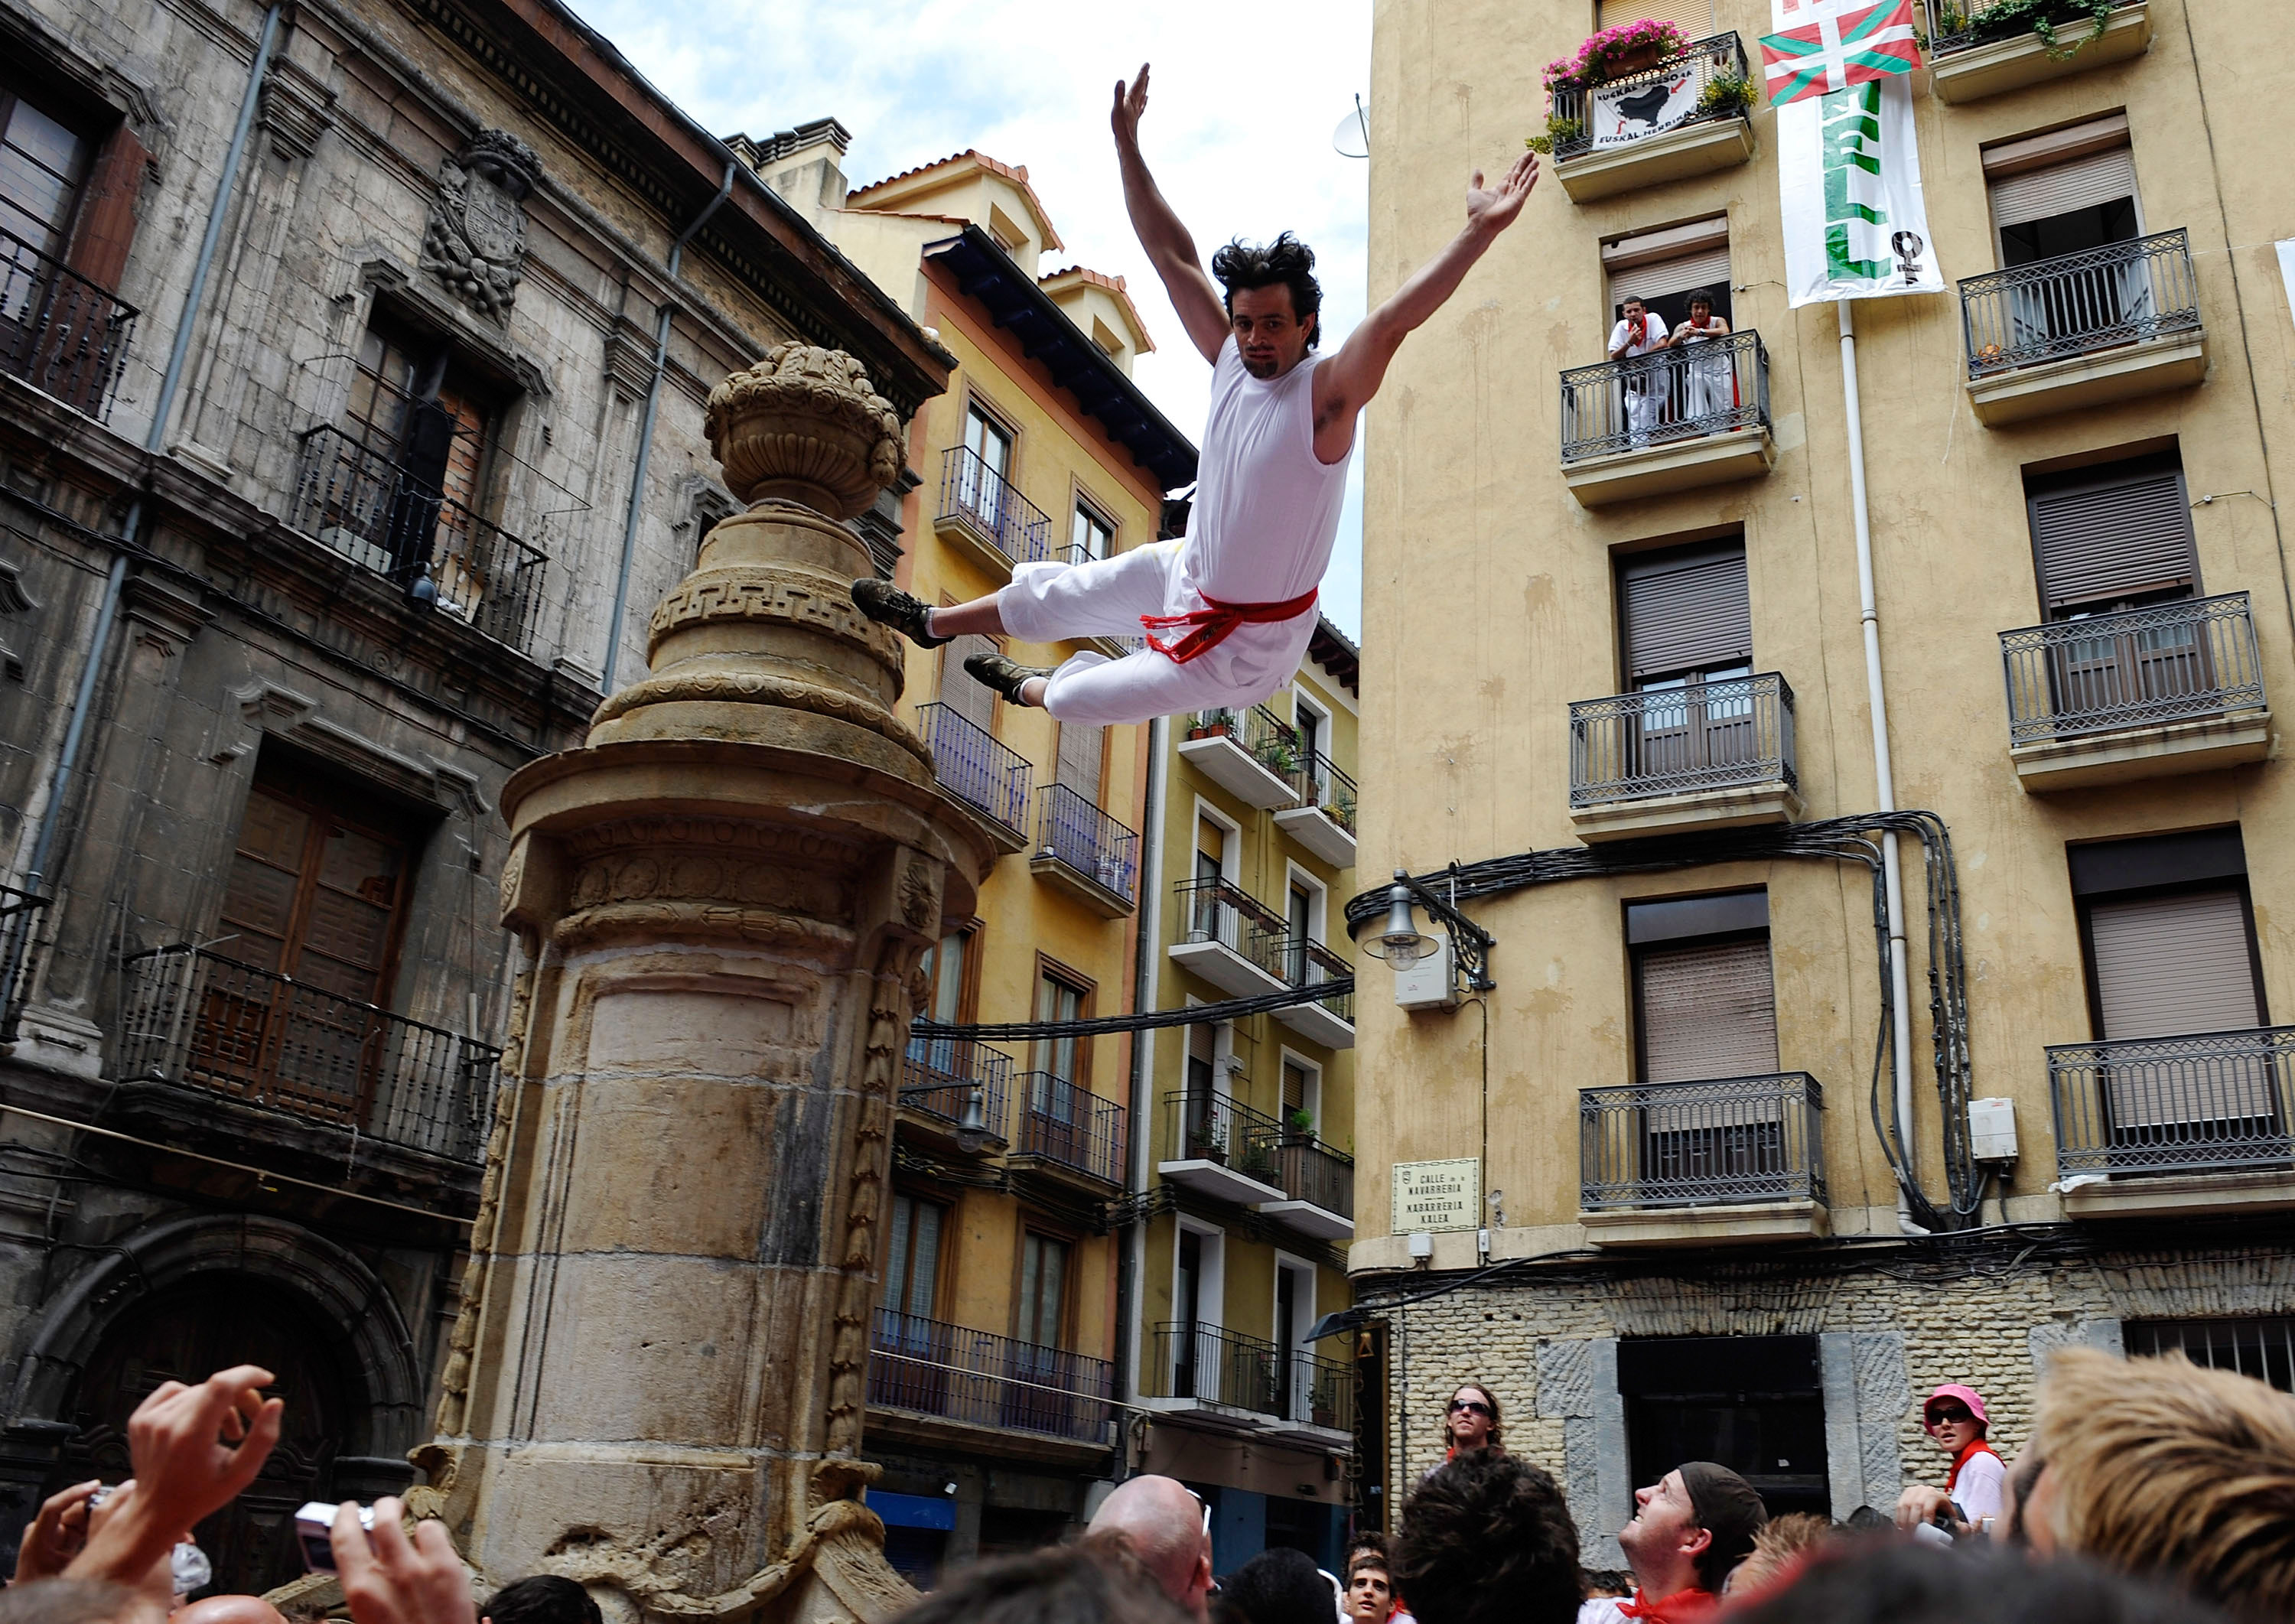 A young reveler jumps from a statue.